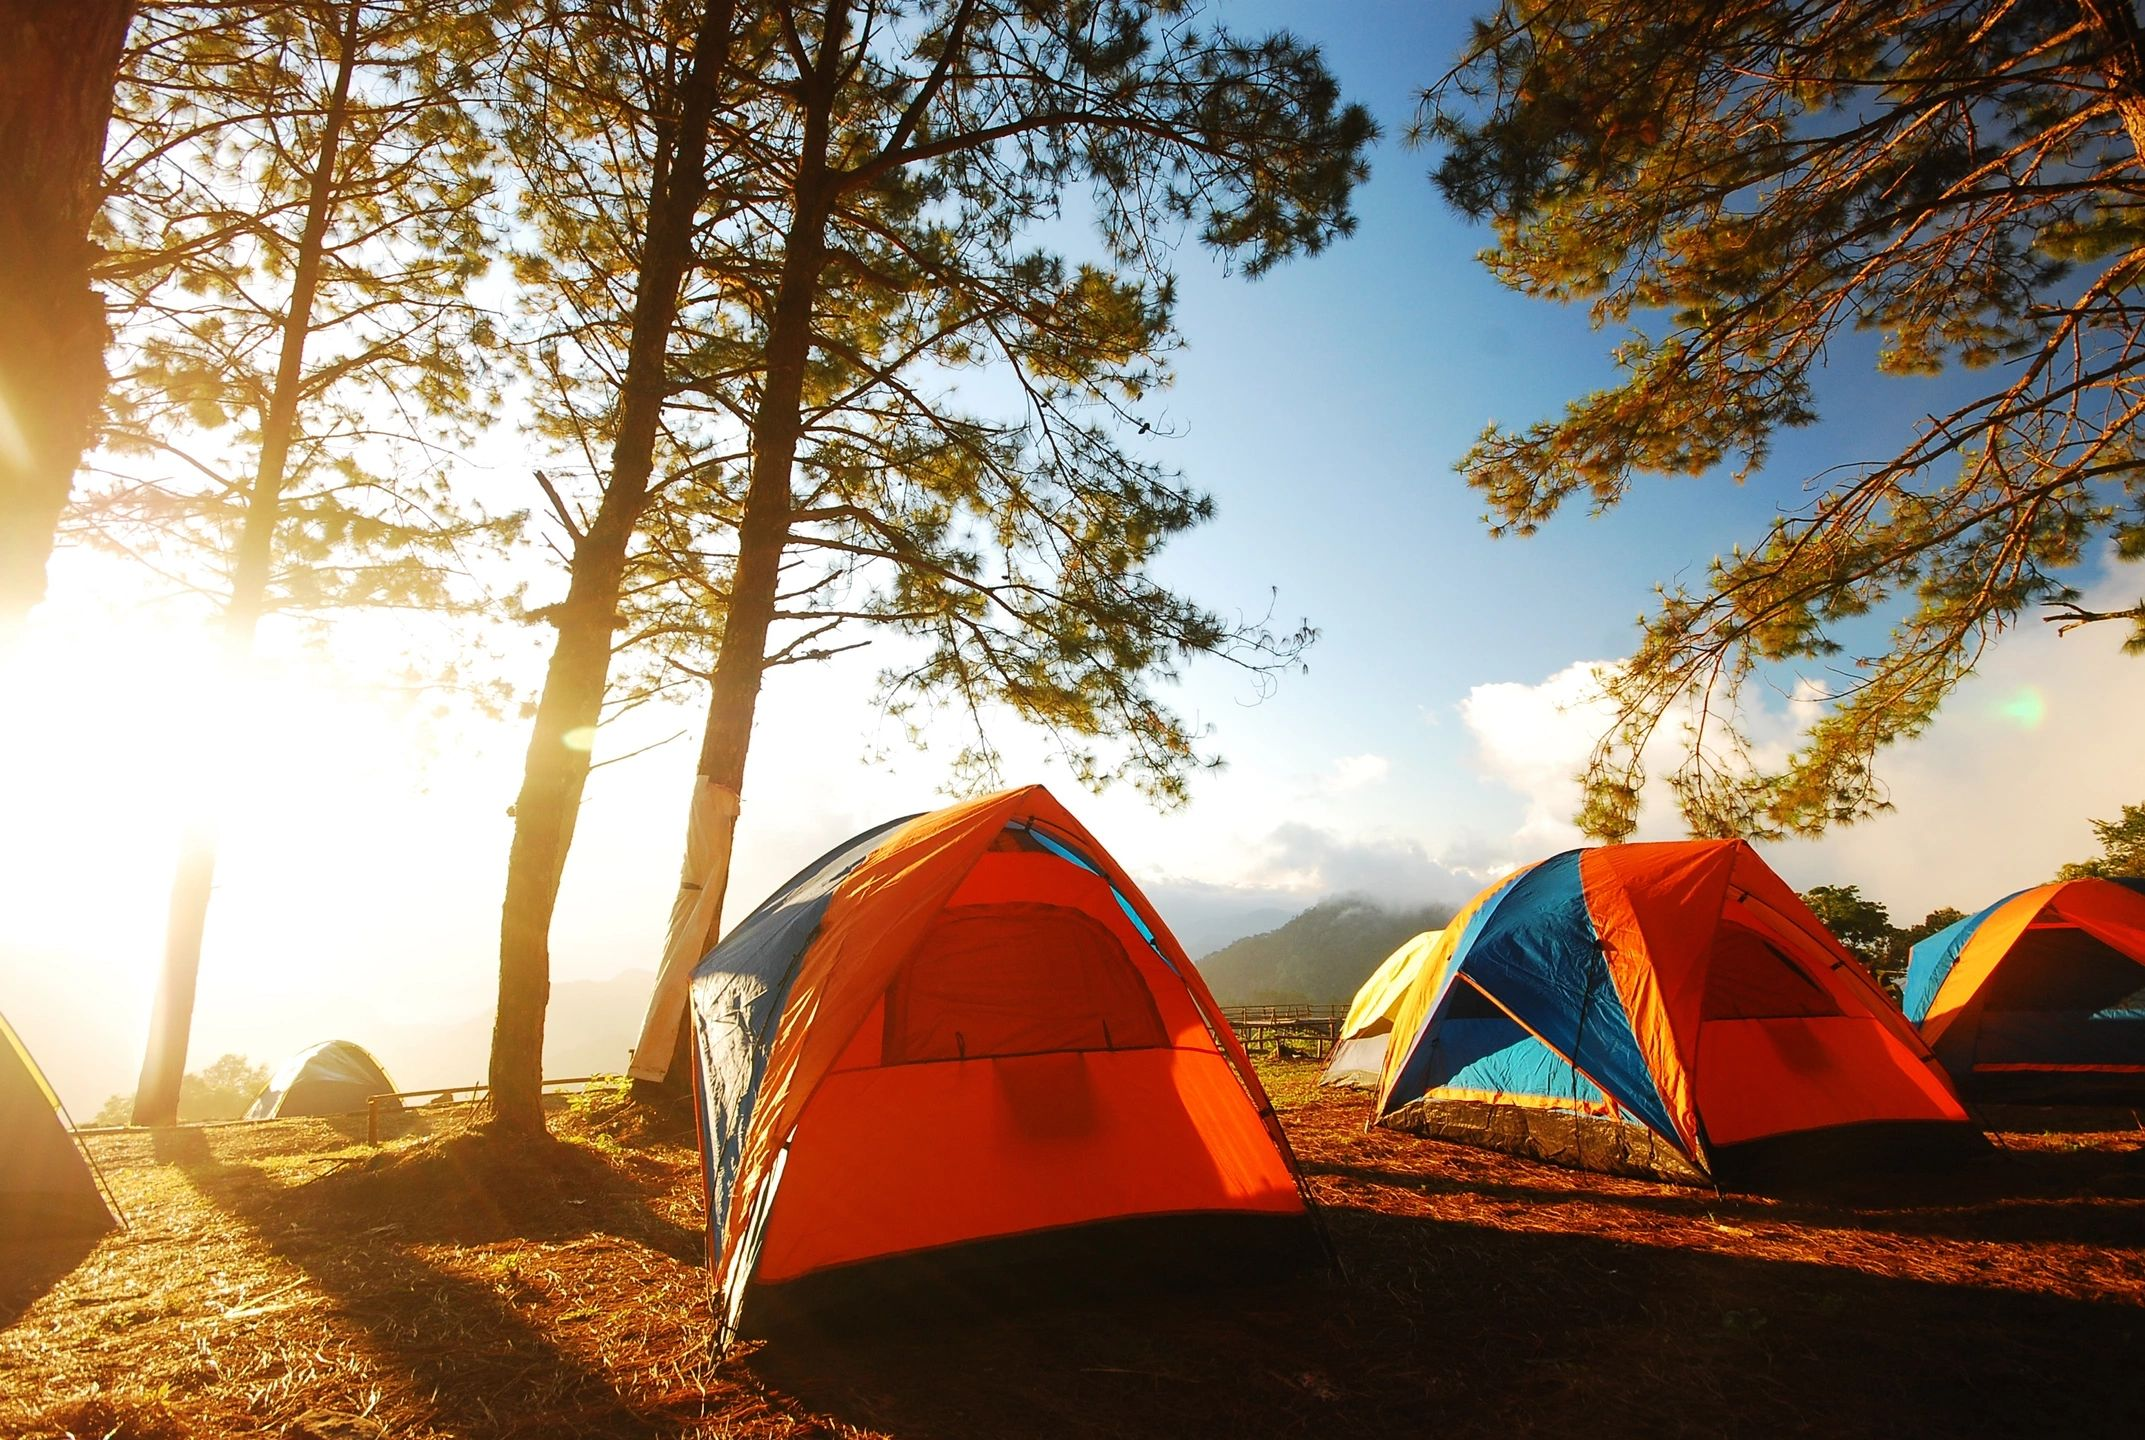 several tents for camping